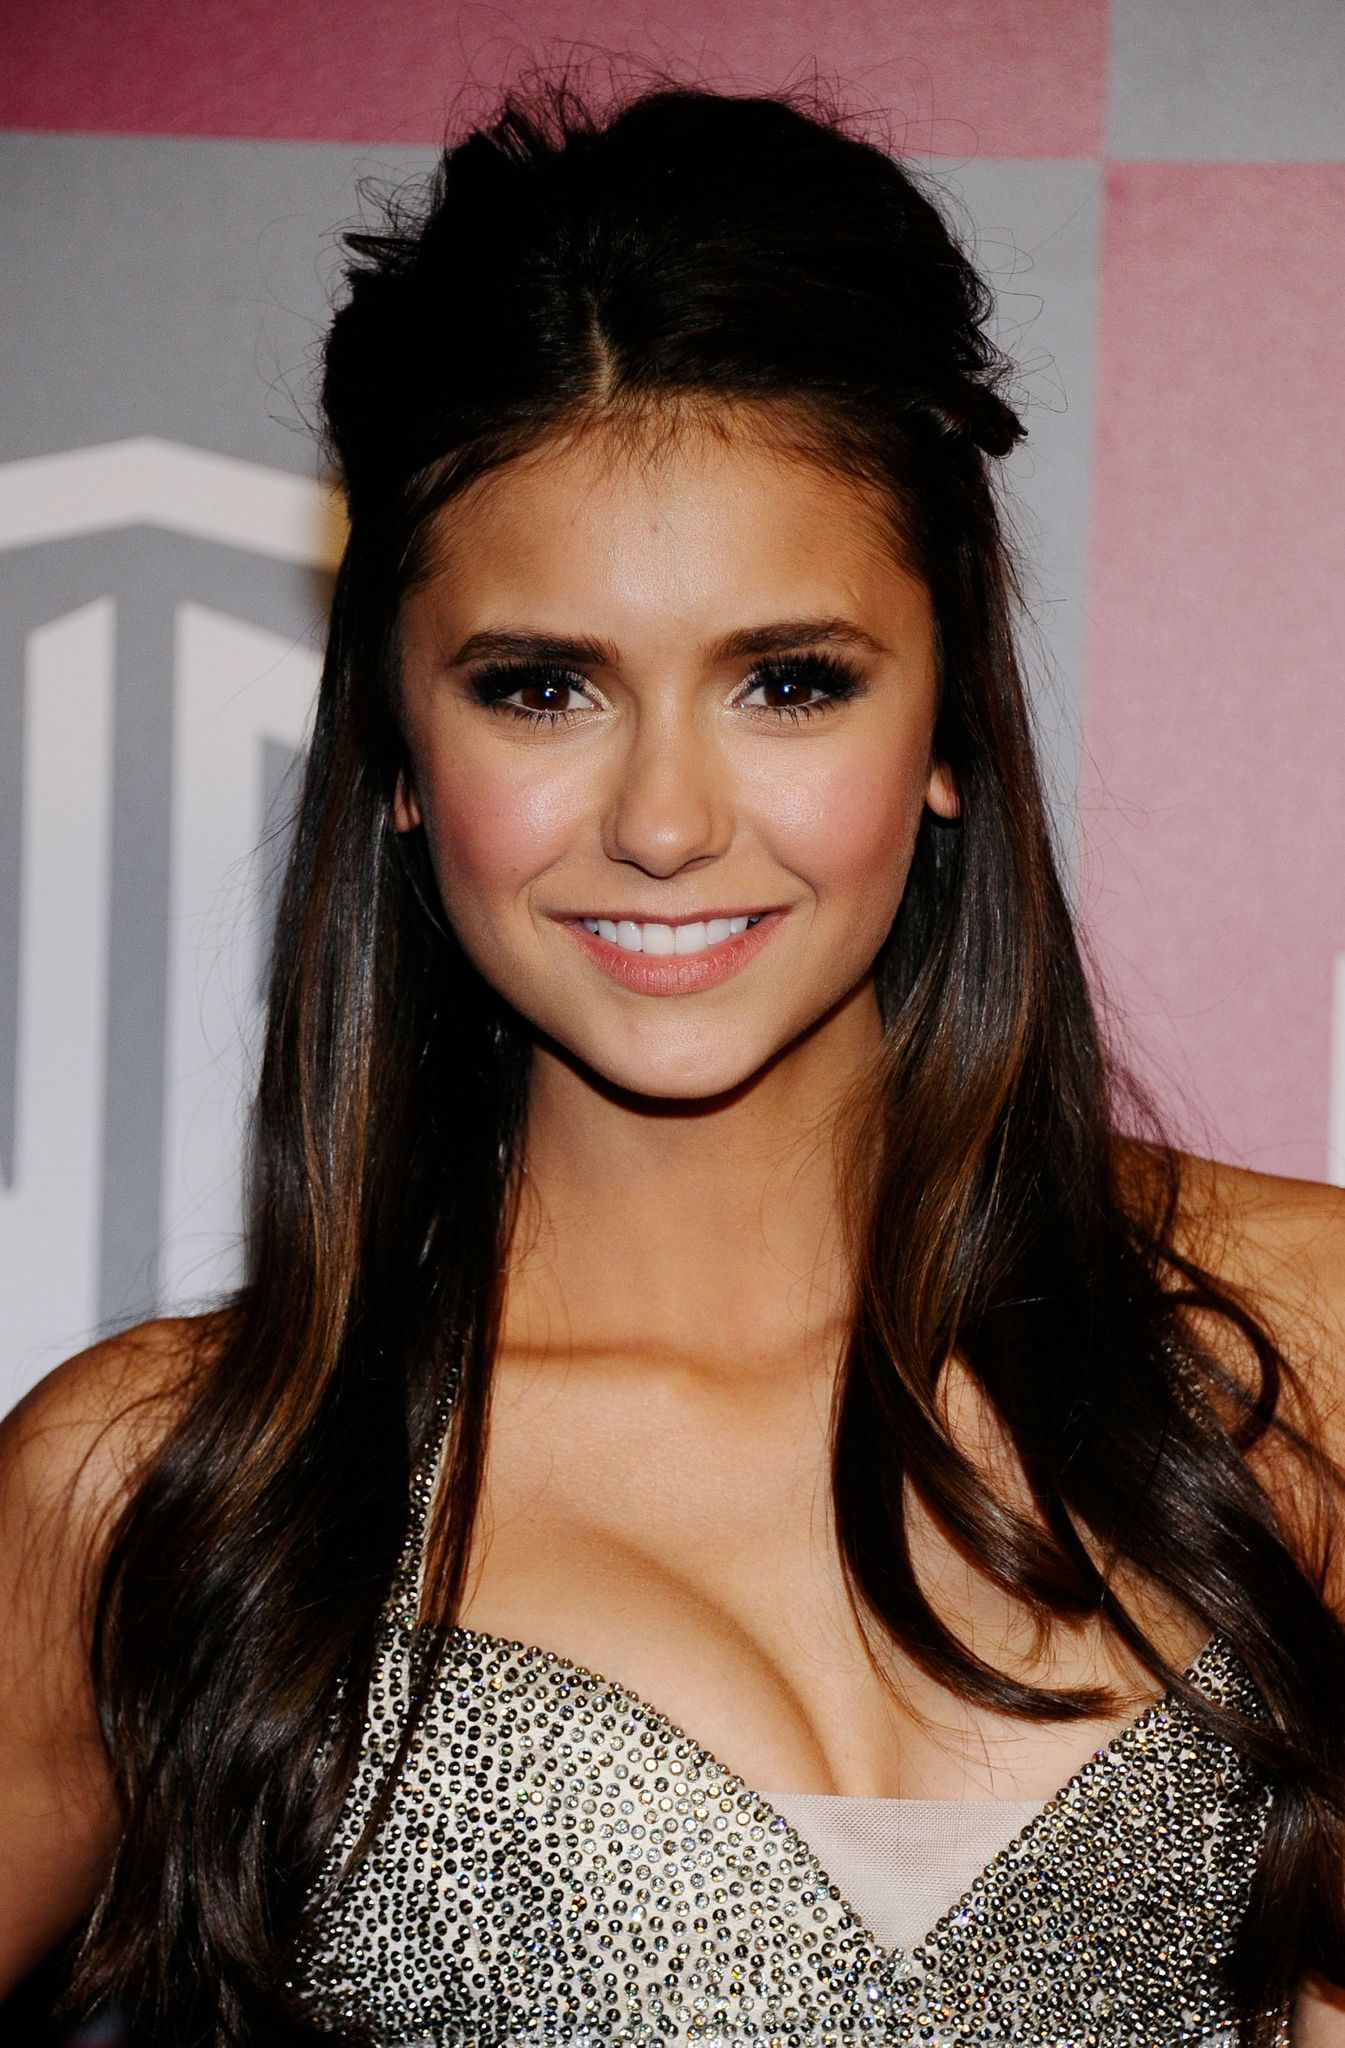 NINA DOBREV dives into the deep end of acting | SCAD District.